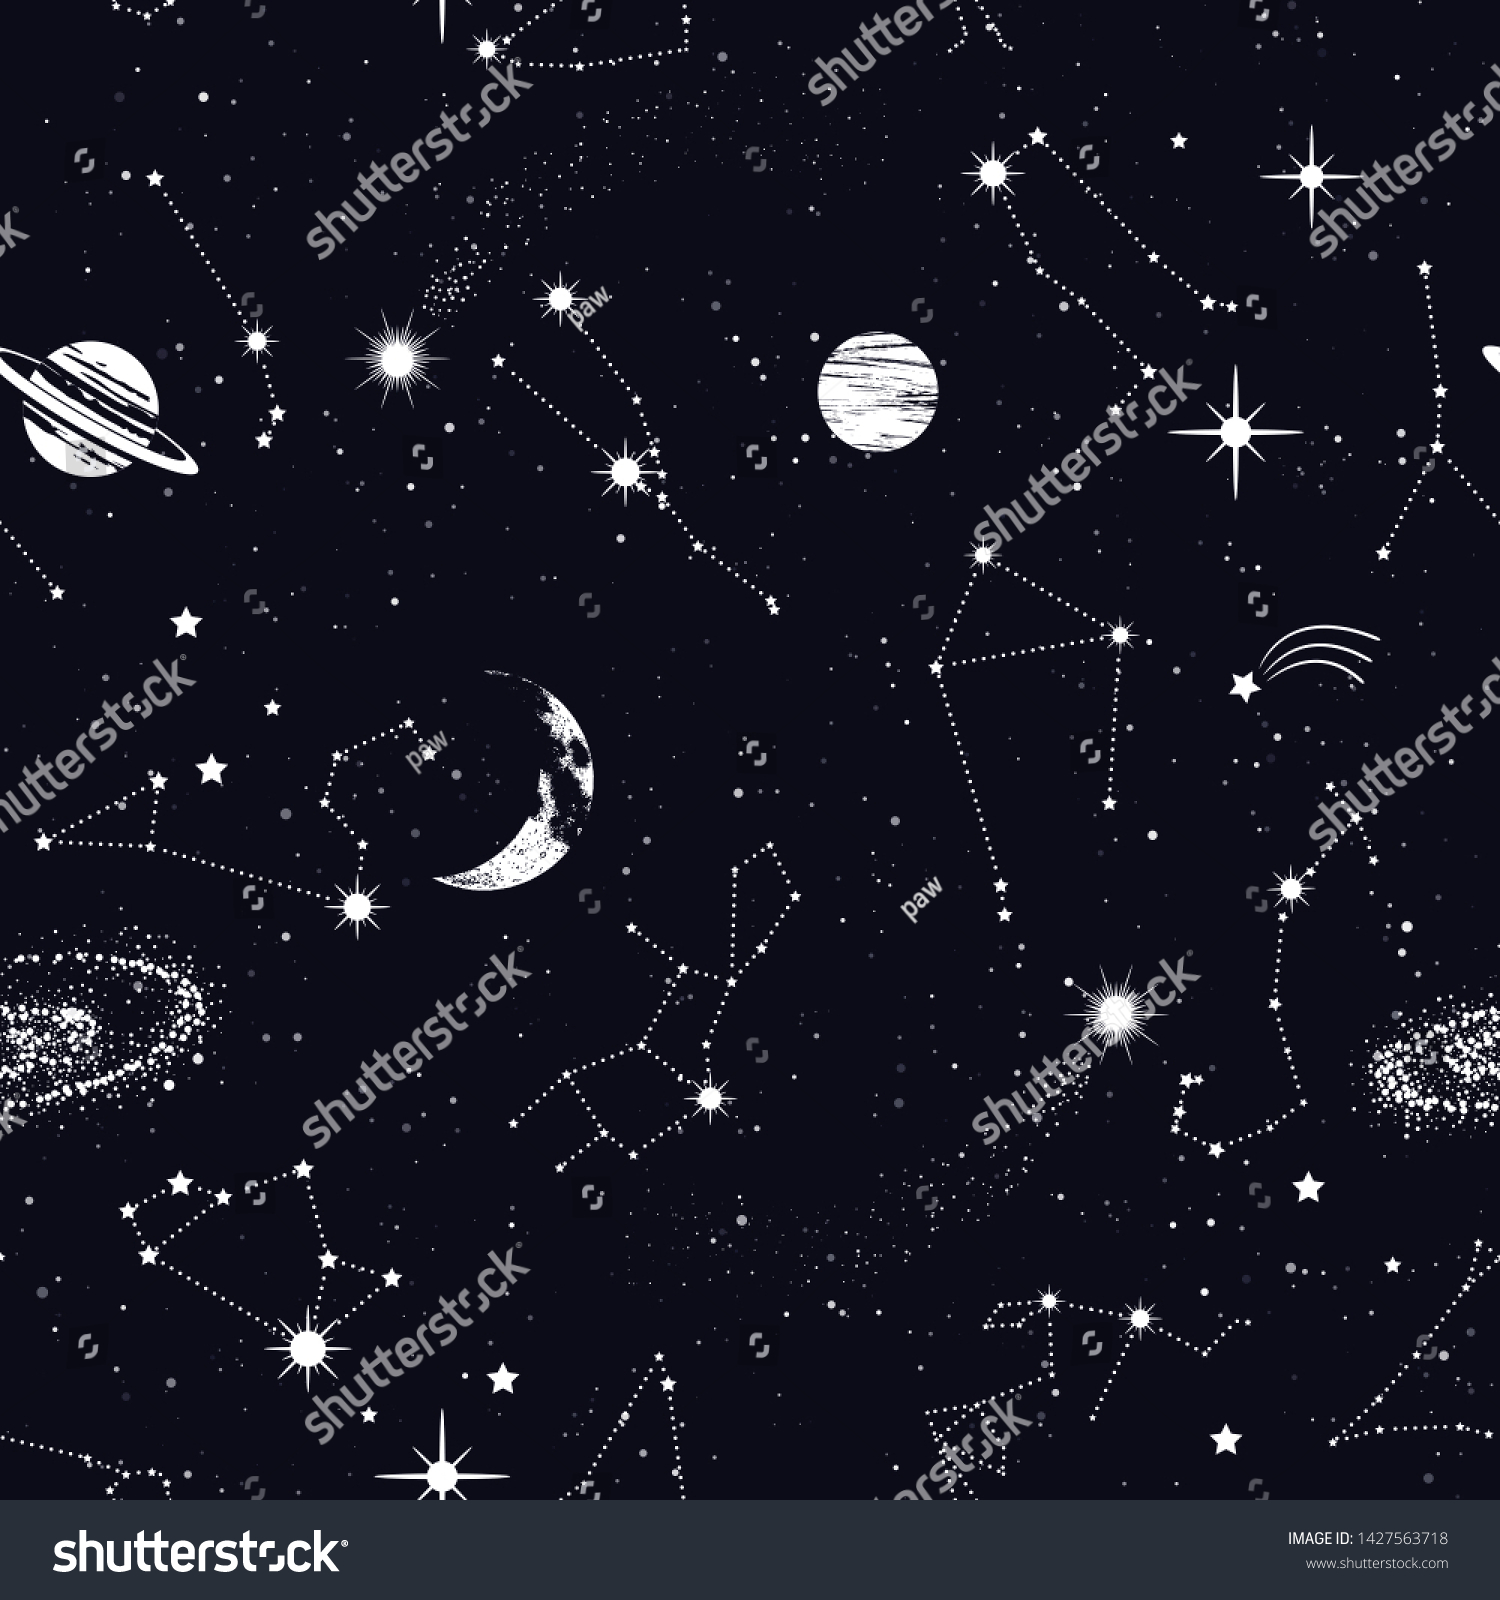 stock vector space seamless pattern with zodiac constellations galaxy stars planets in outer space texture 1427563718